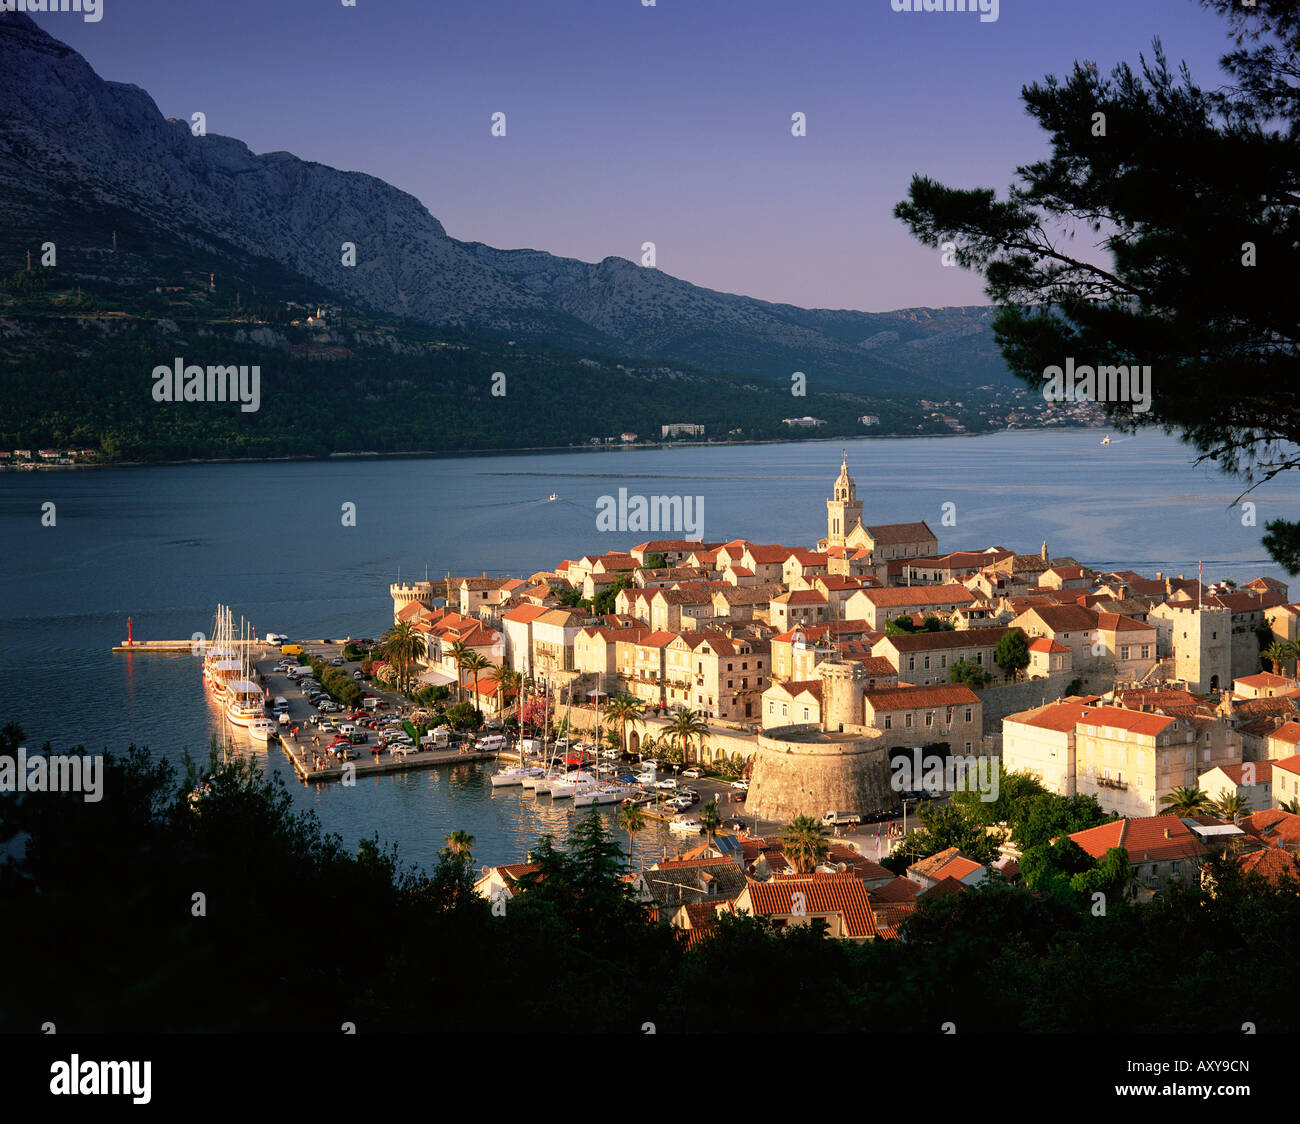 Elevated view of Korcula Town, Old Town of Korcula, Korcula Island, Dalmatia, Dalmatian coast, Croatia, Europe - Stock Image